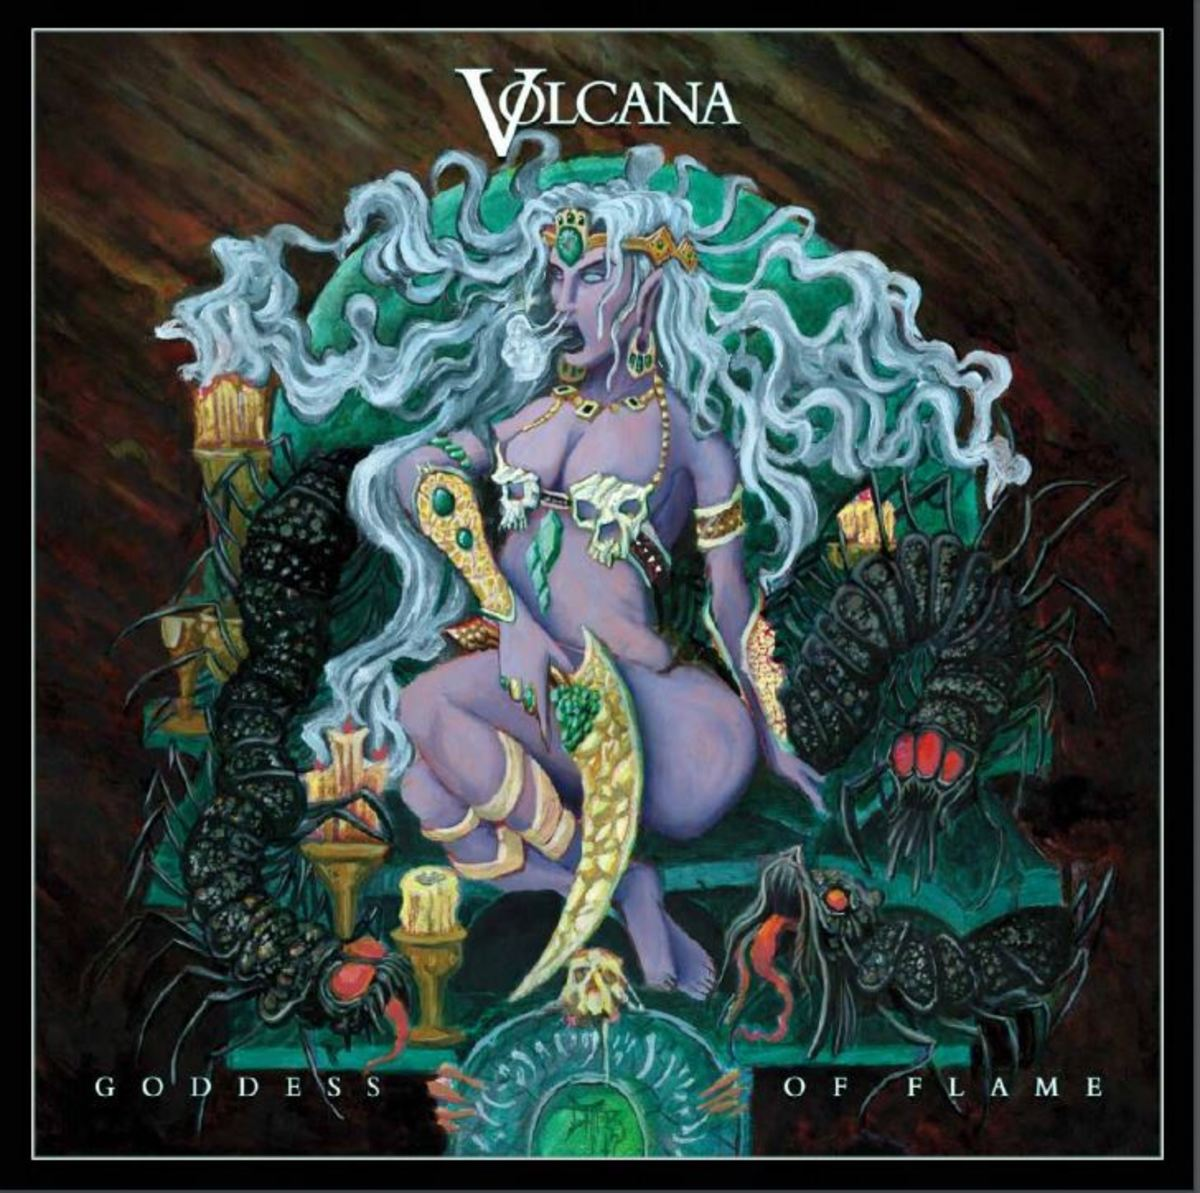 "Volcana ""Goddess of Flame"" CD cover"